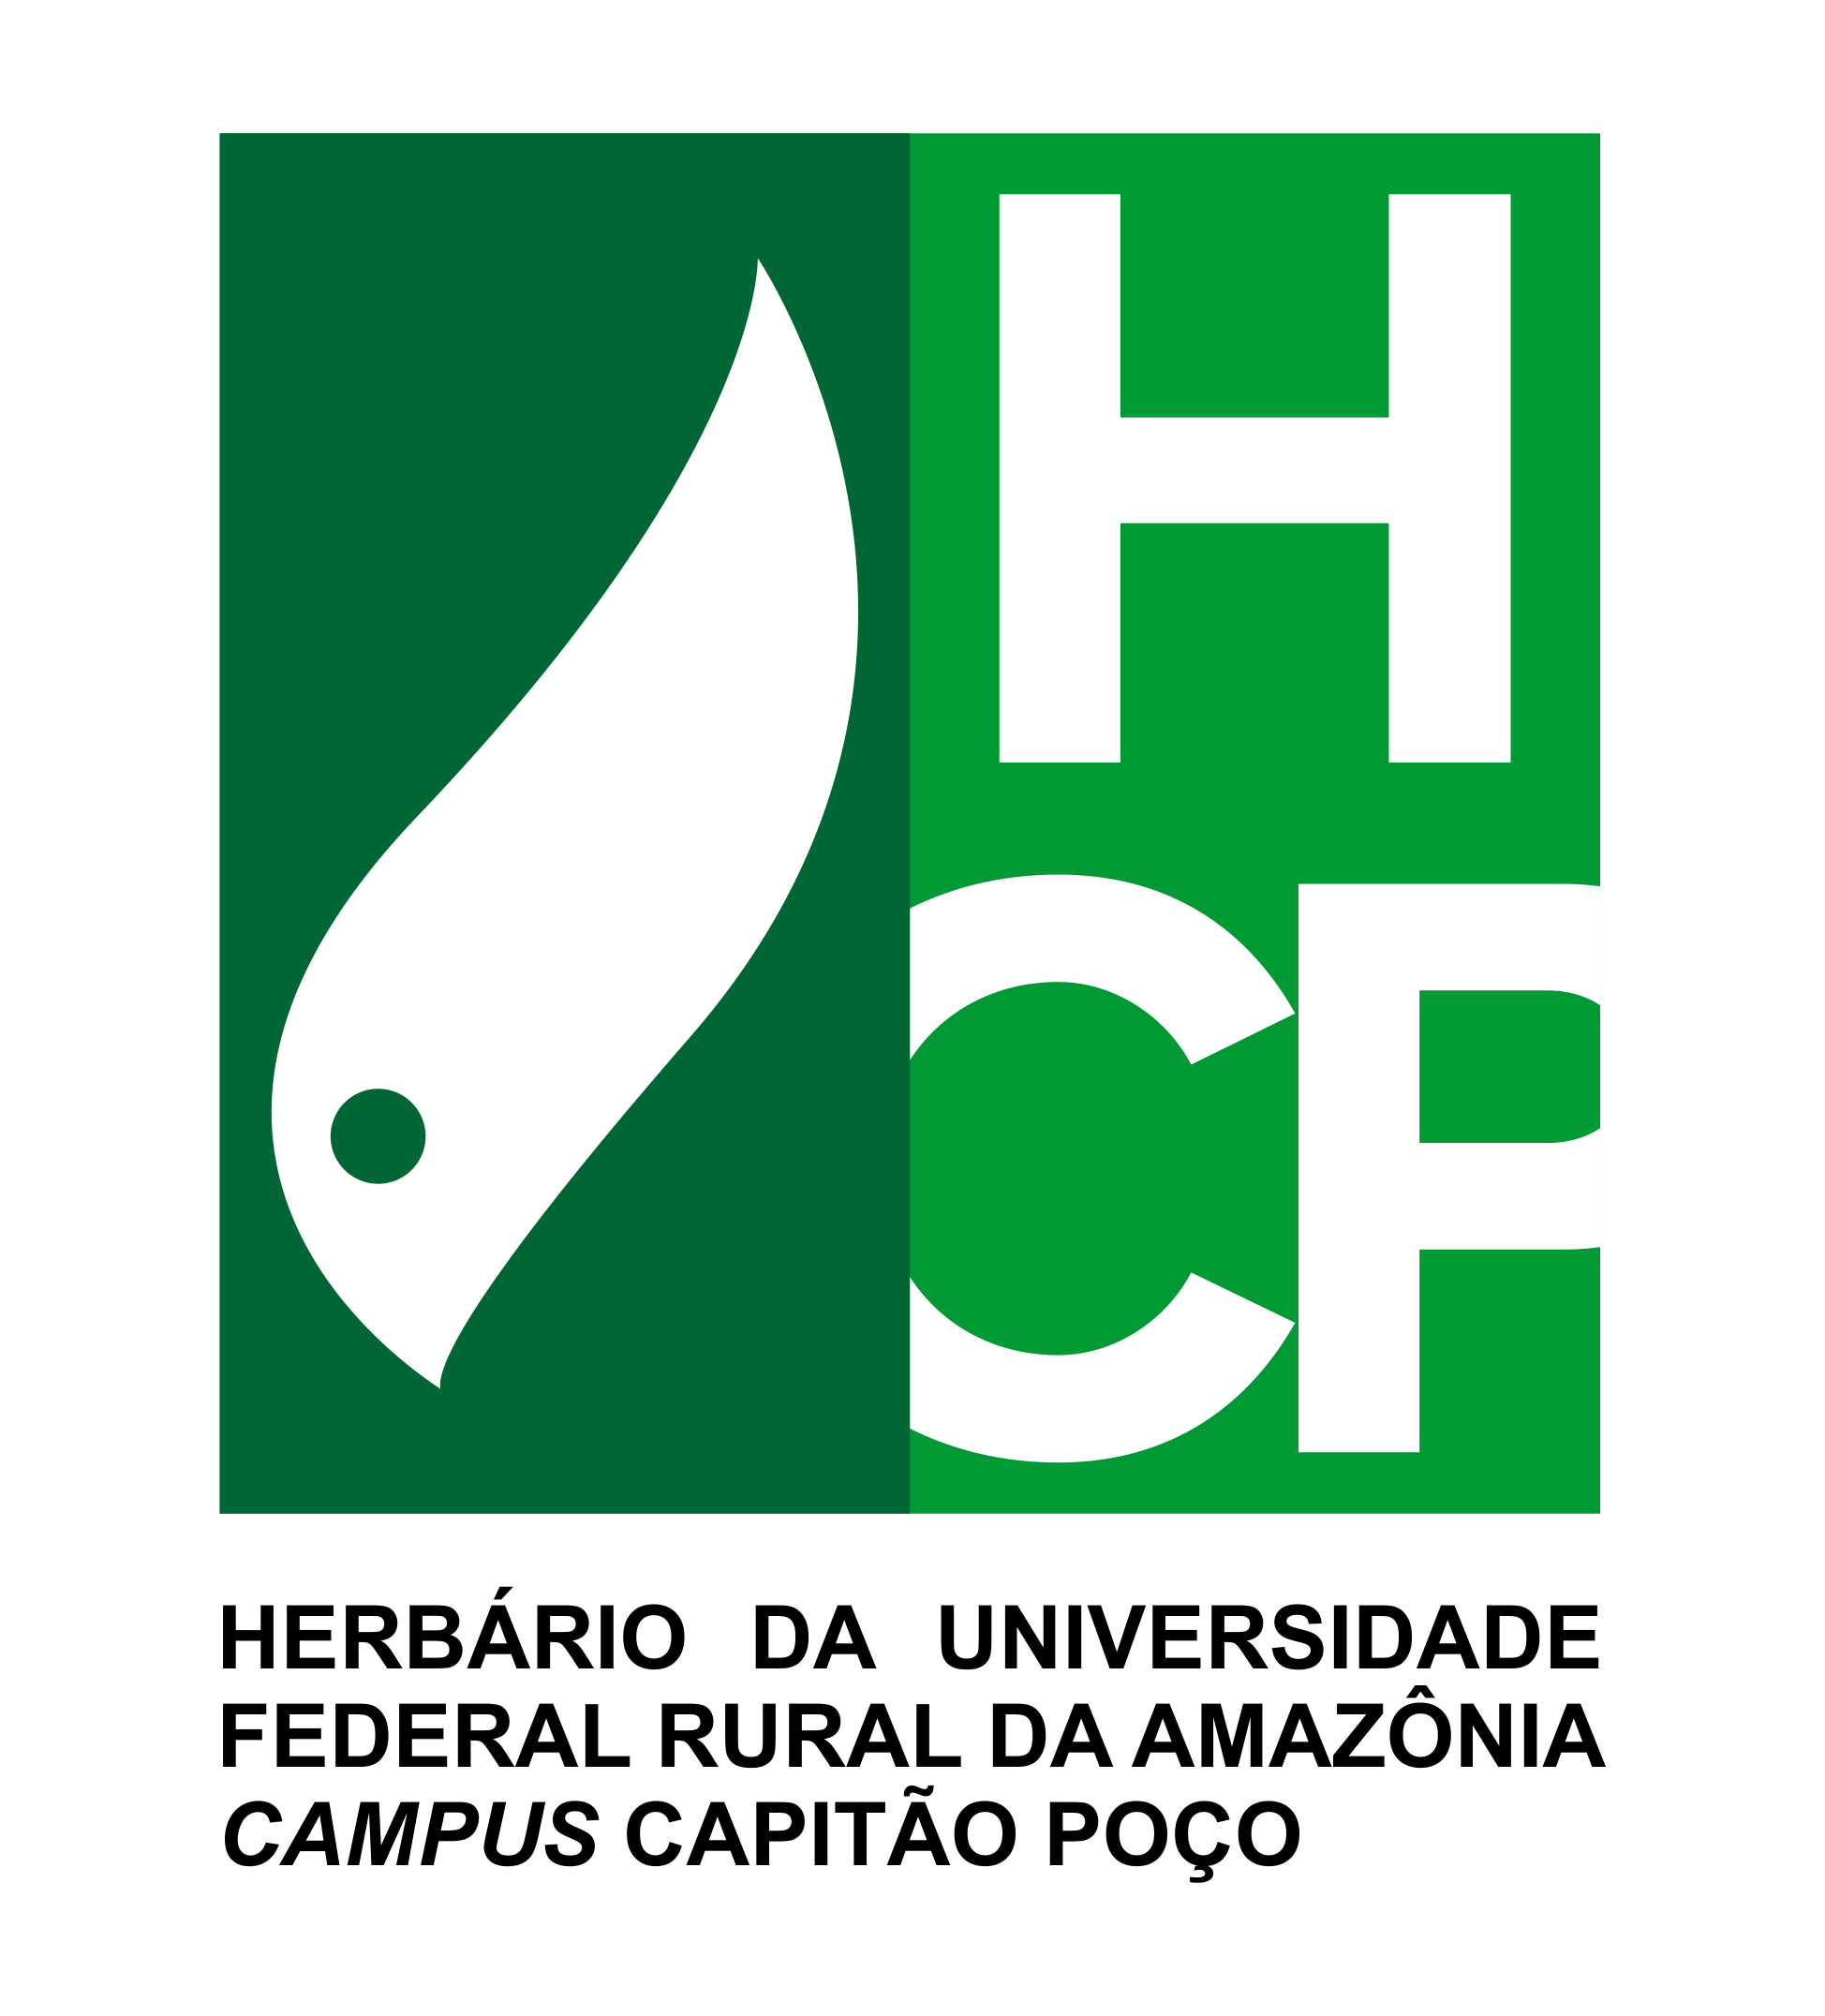 HCP - Universidade Federal Rural da Amazônia